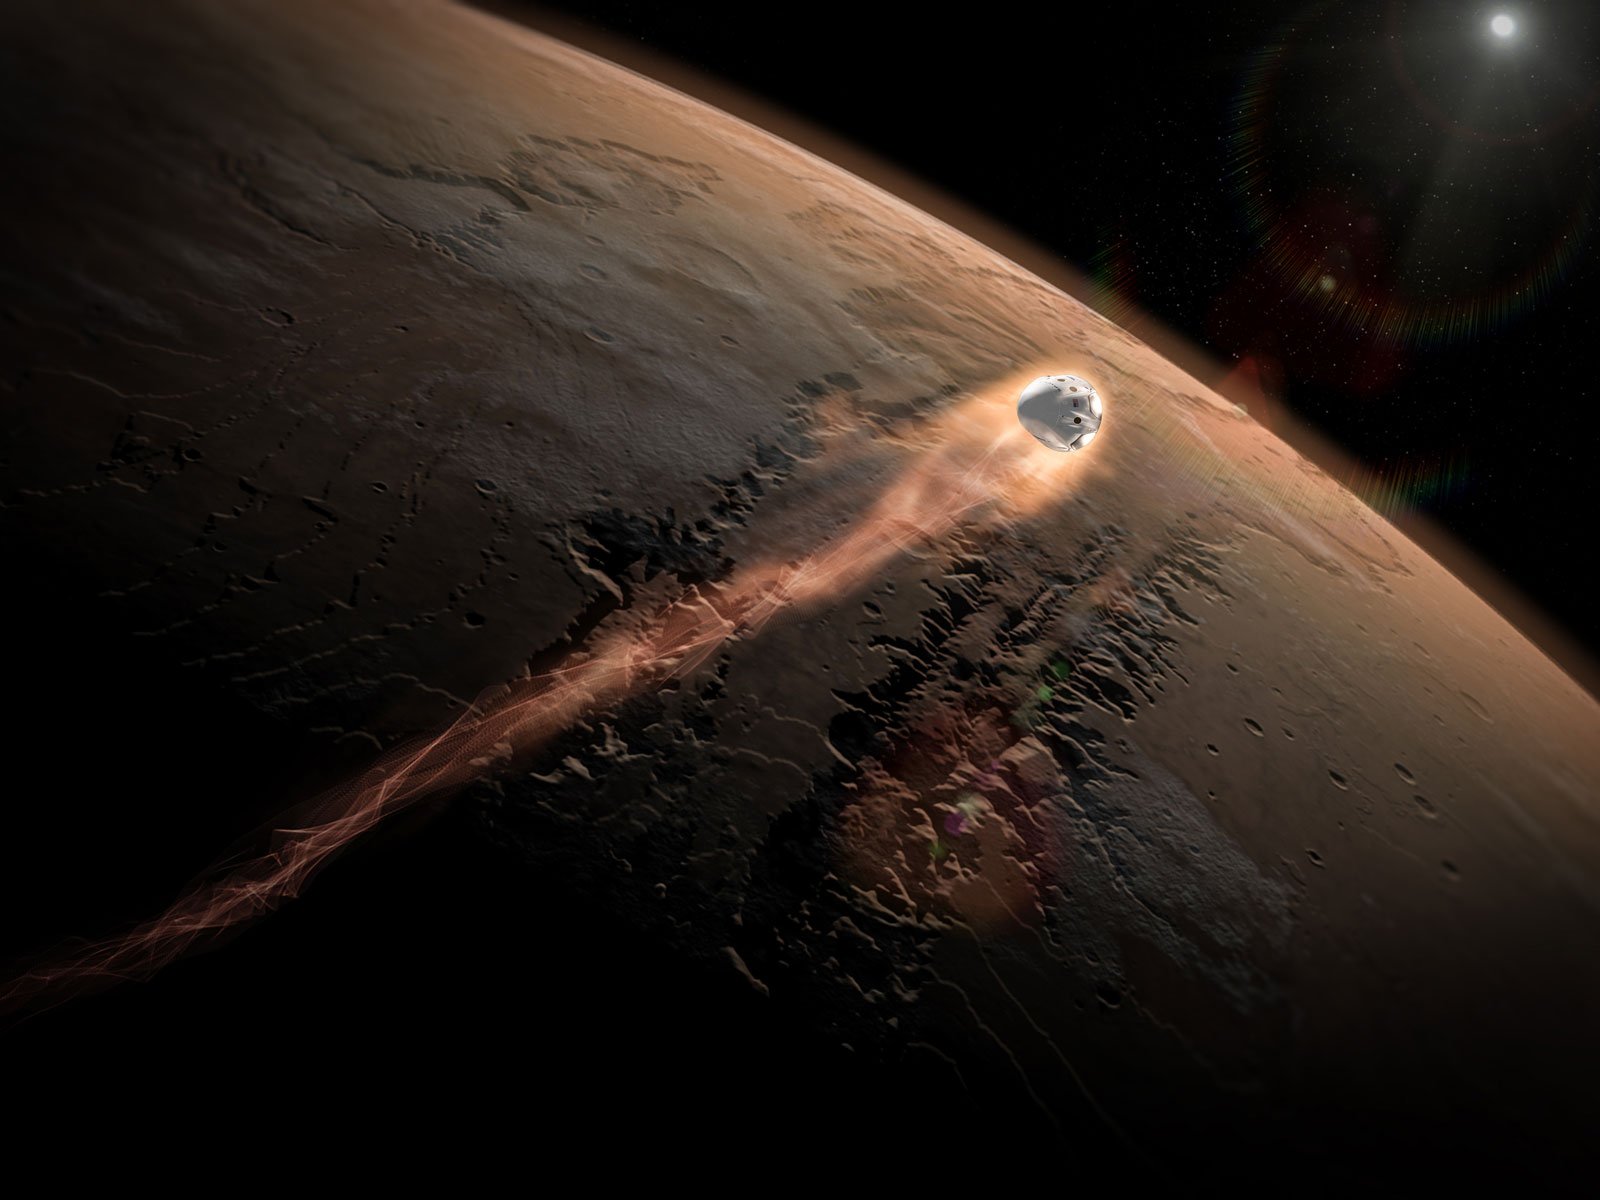 SpaceX's Dragon Enters Mars' Atmosphere | Space Wallpaper